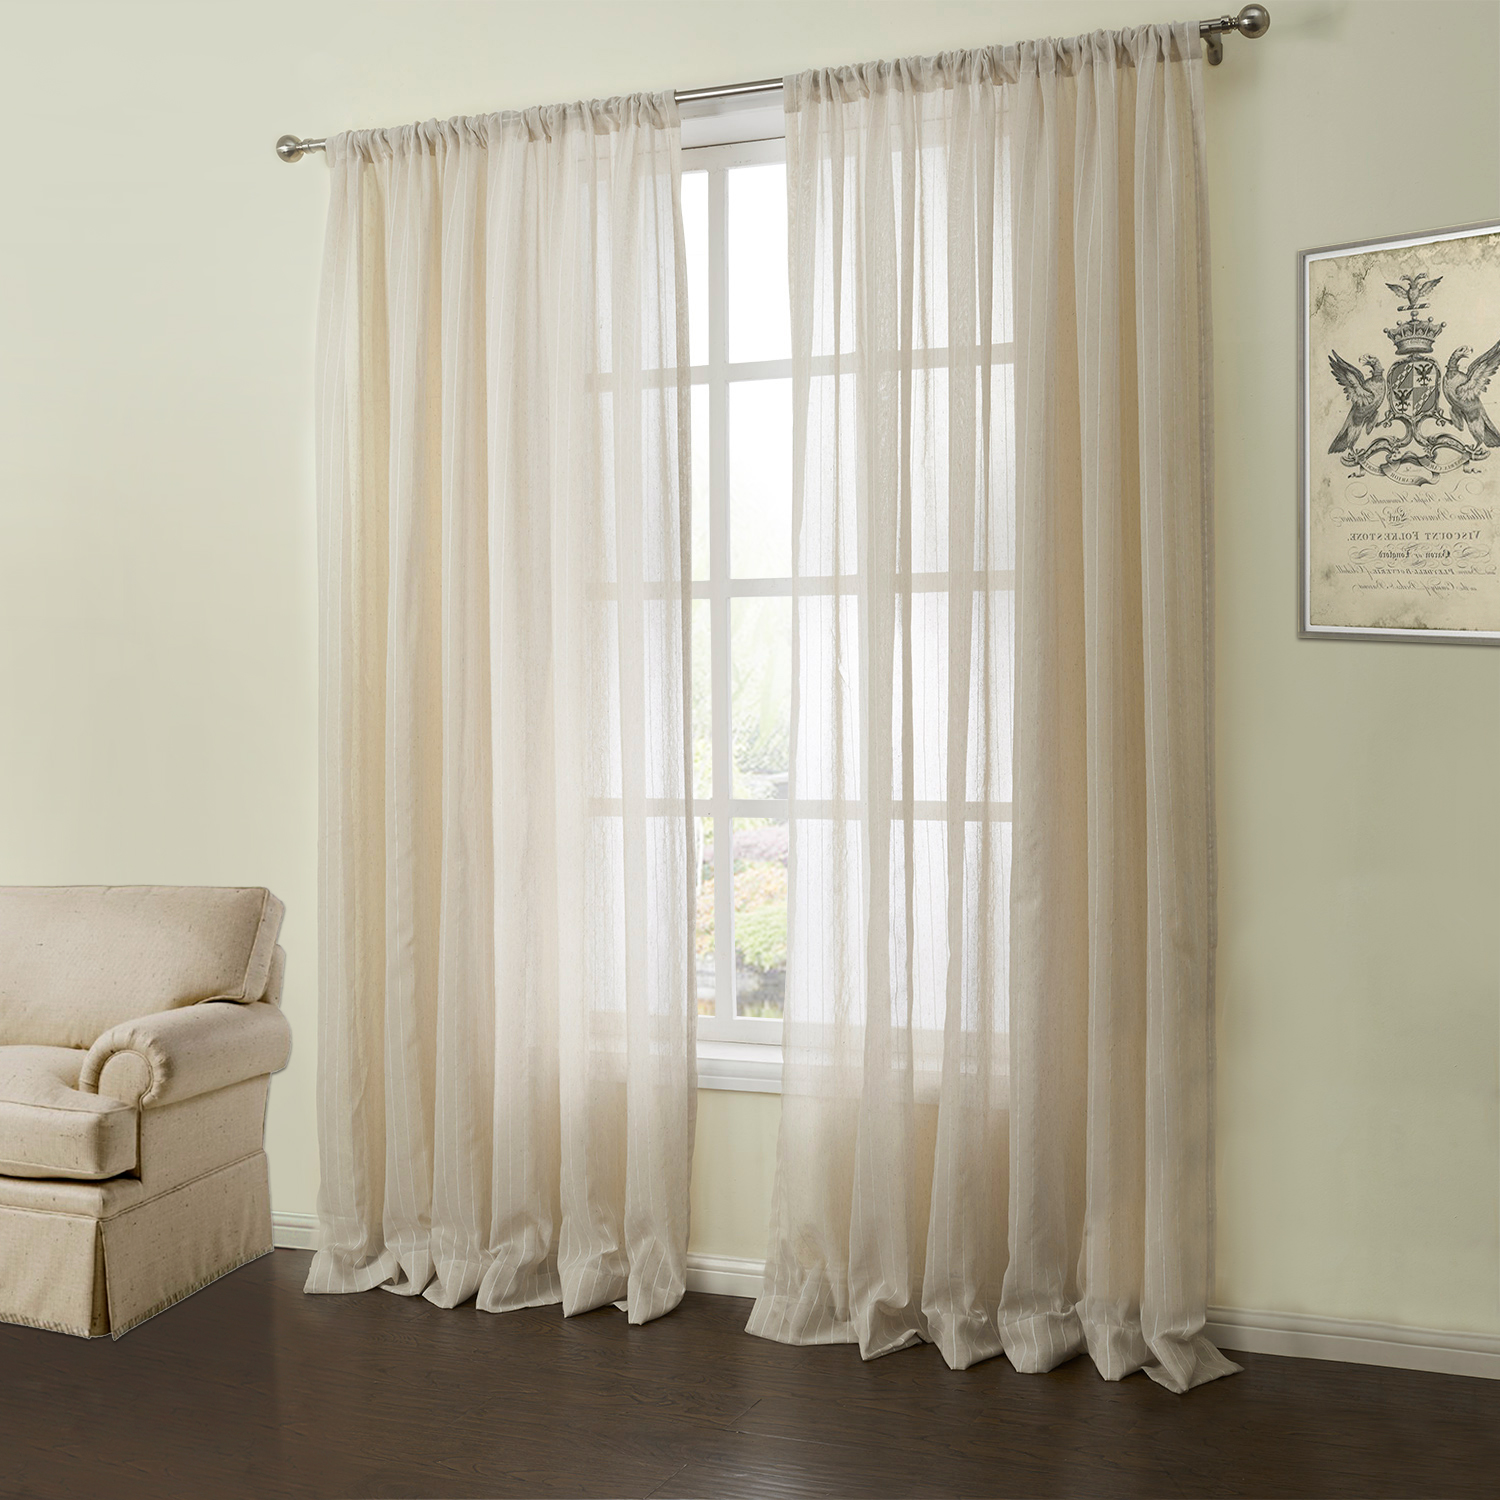 Luxury sheer curtains